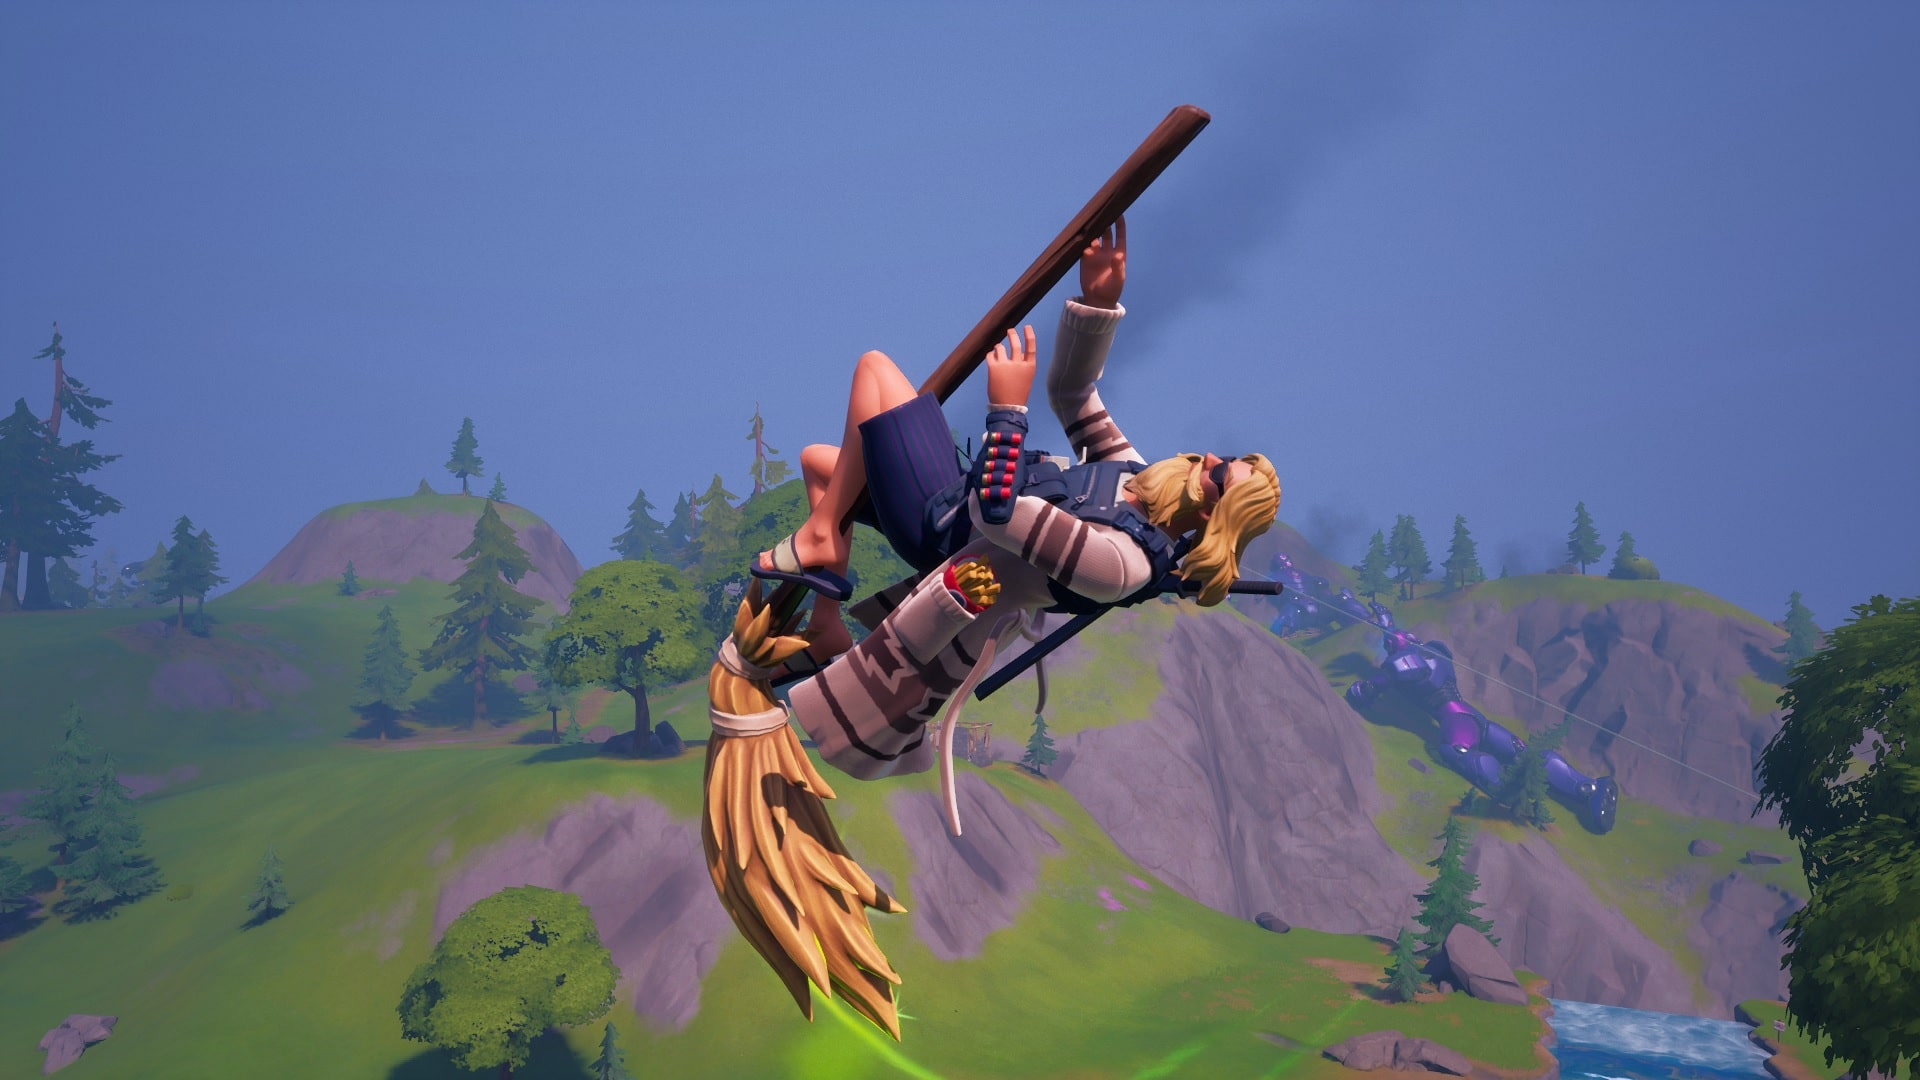 Finding the Fortnitemares Witch Broom